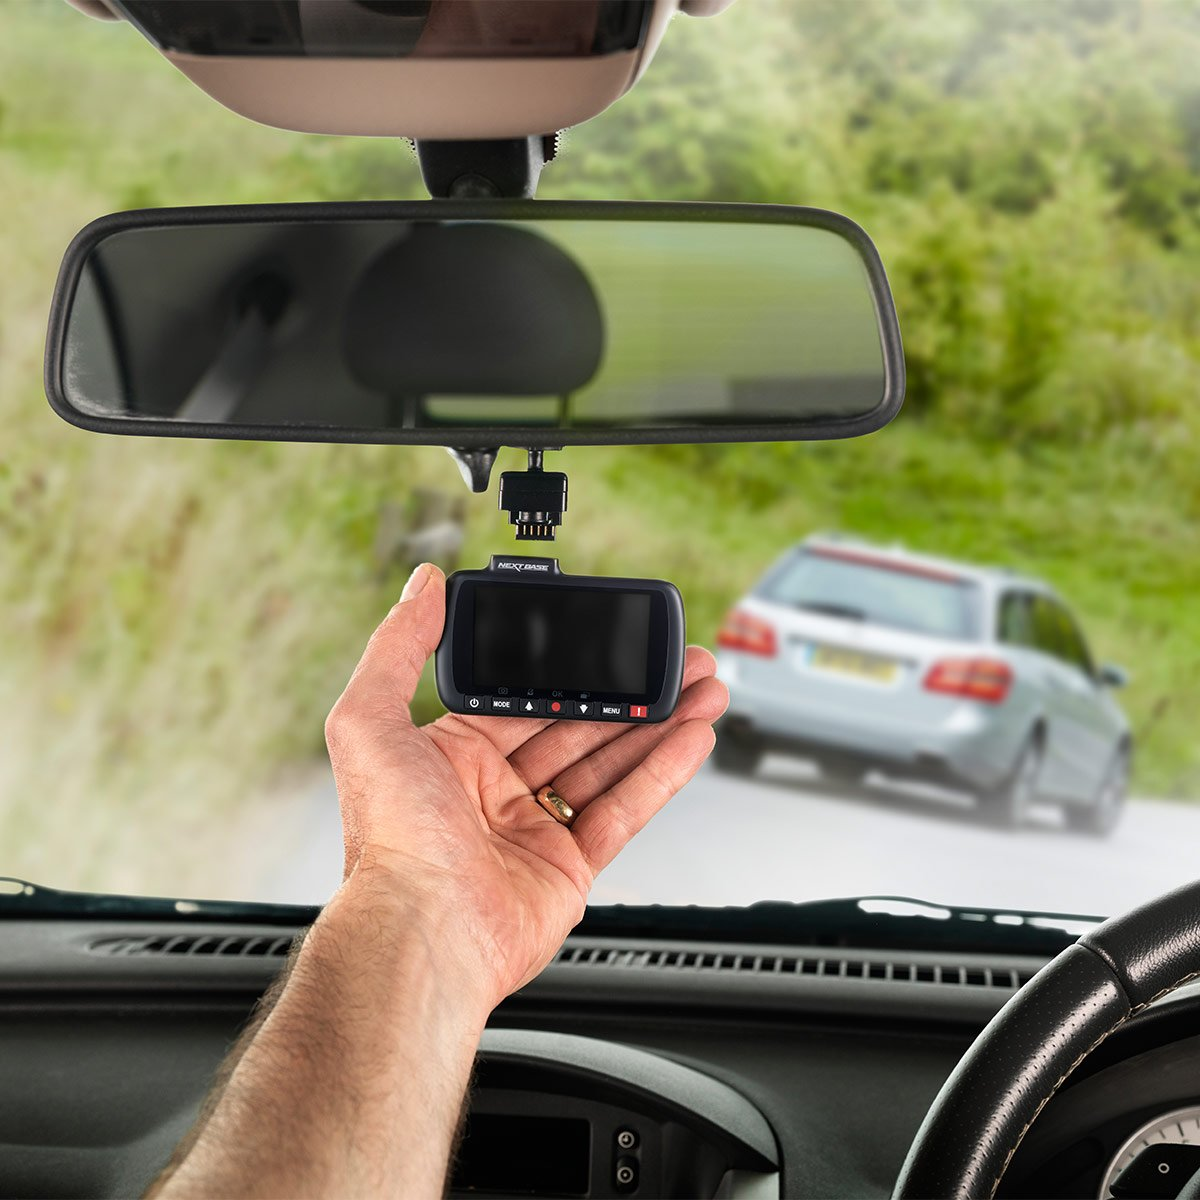 Amazon.com: AOB Dash Camera Car Dvr Recorder Cam Hd Video 1080p G Sensor Vehicle 2 Dual Lens Night Vision Full 7 4: Car Electronics